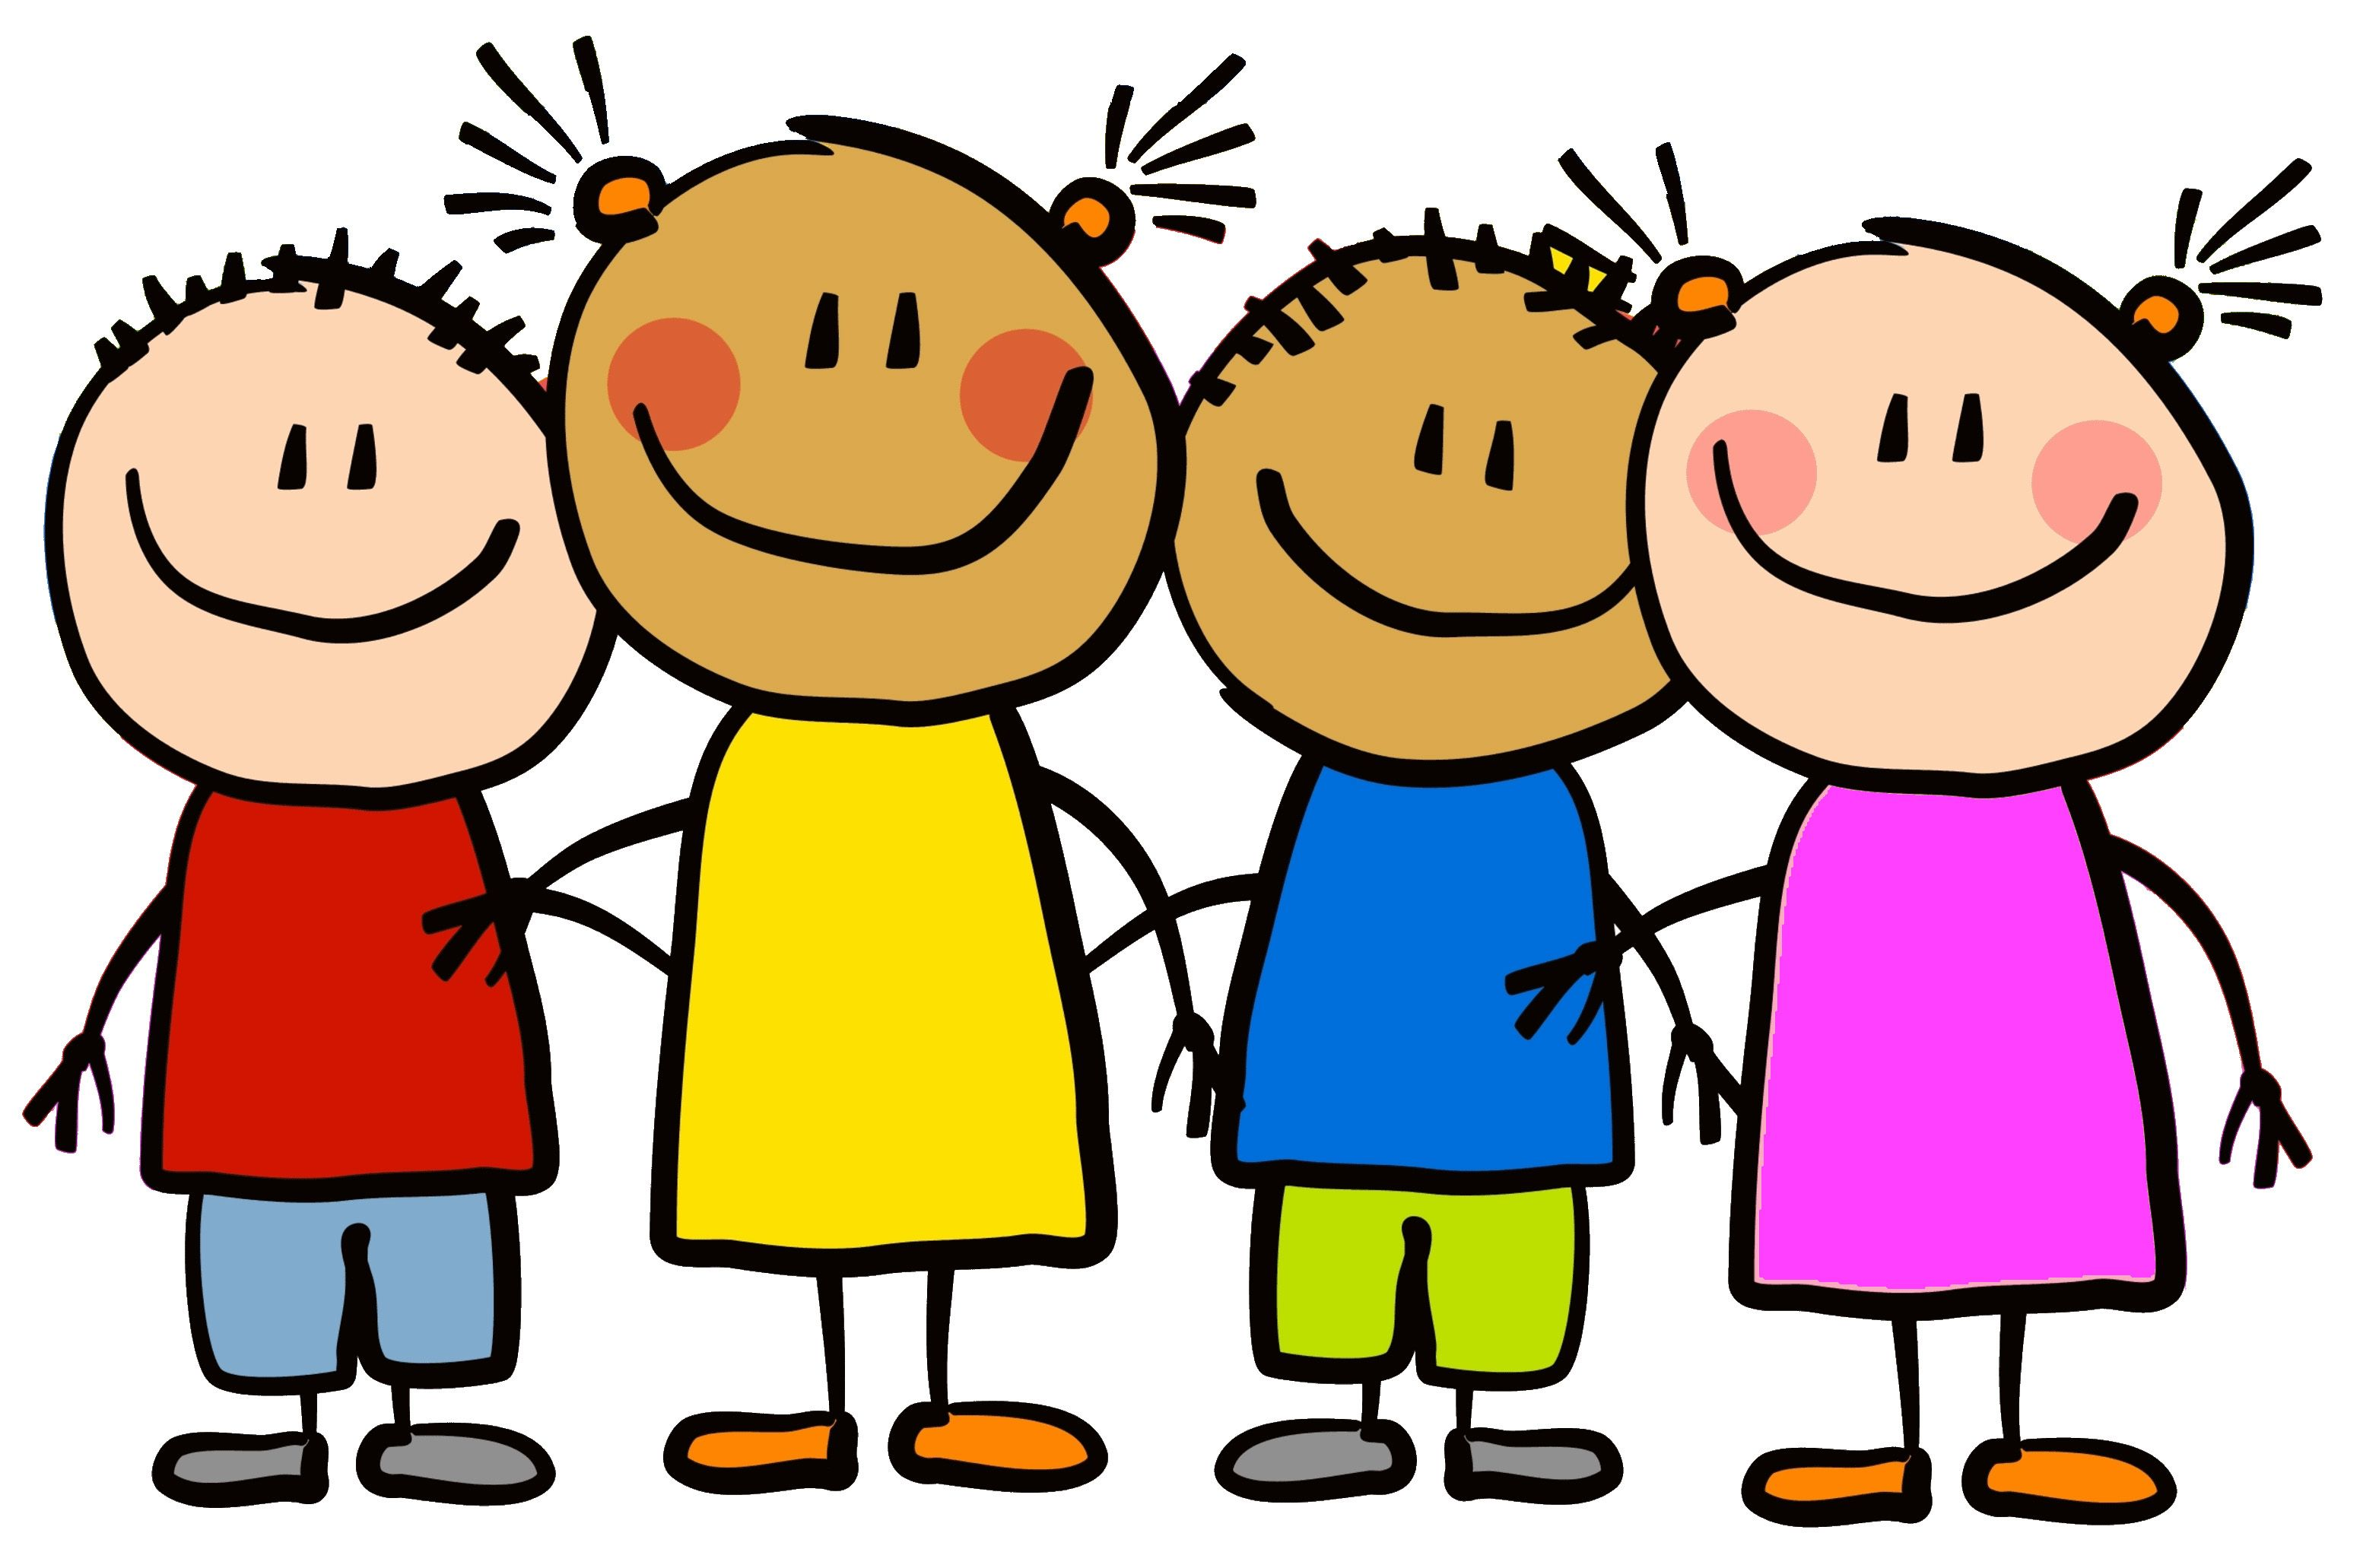 Children images clipart image royalty free library Children - Lets Break It Down | Back to School Ideas | School ... image royalty free library